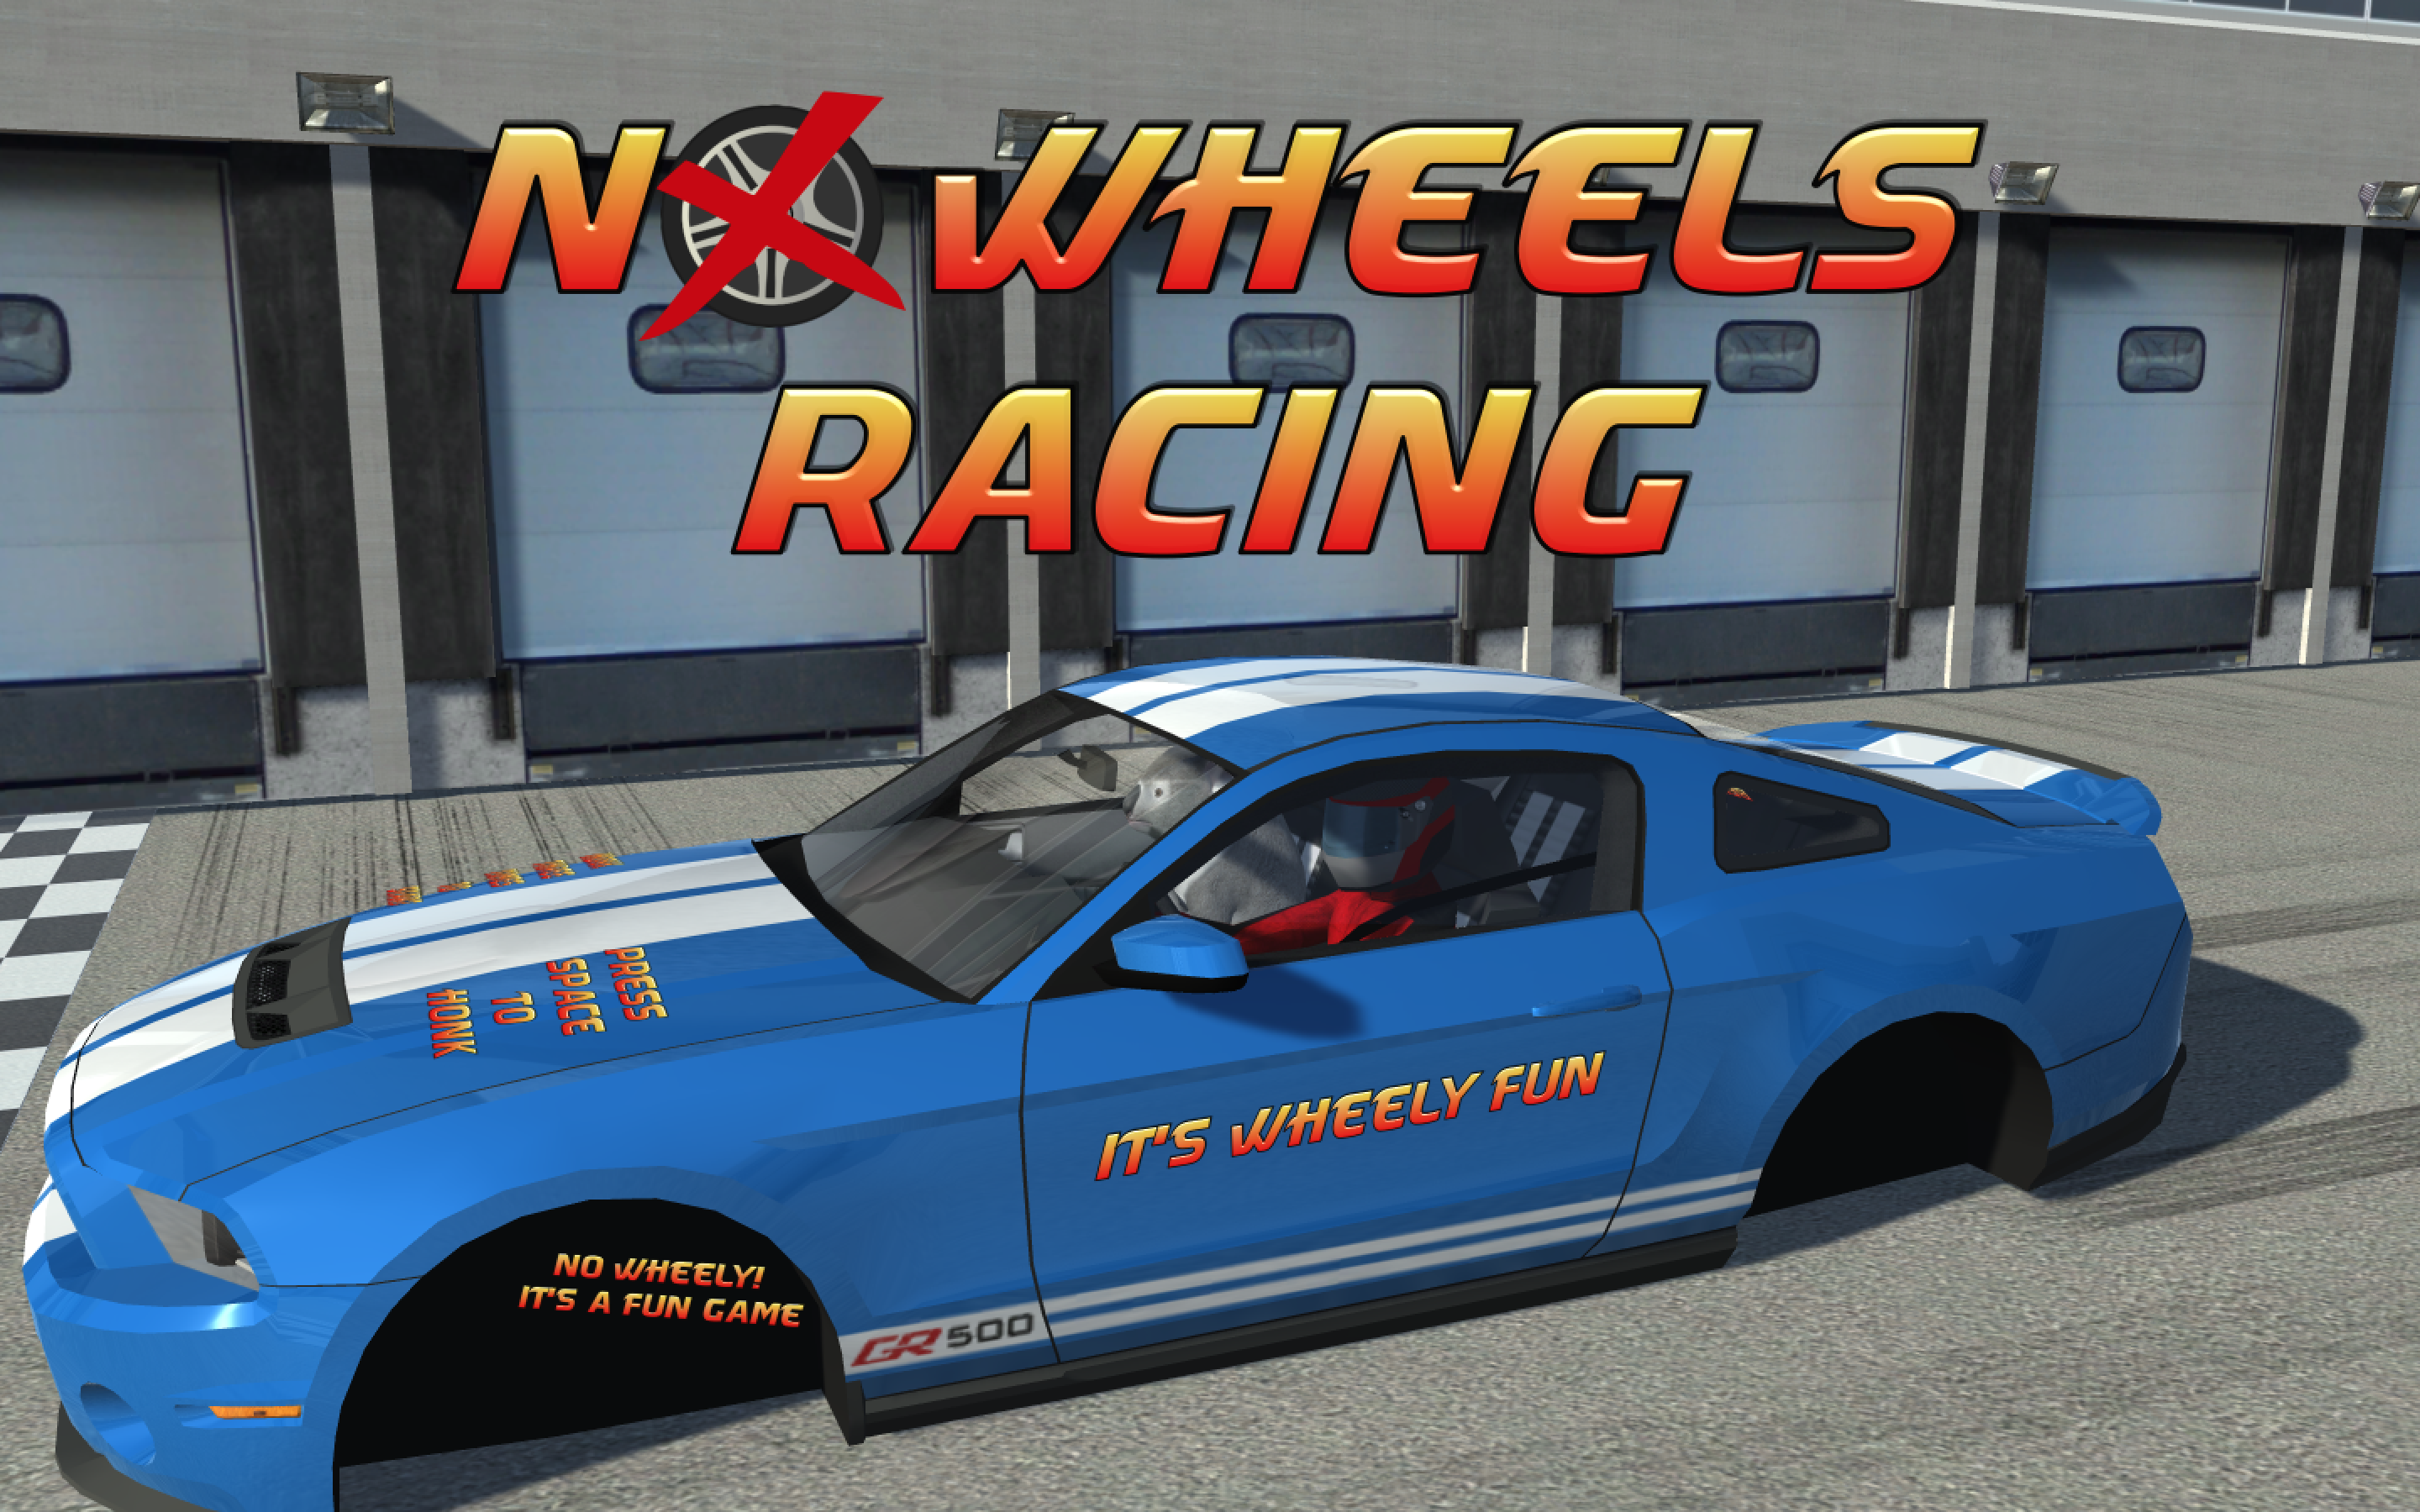 No Wheels Racing